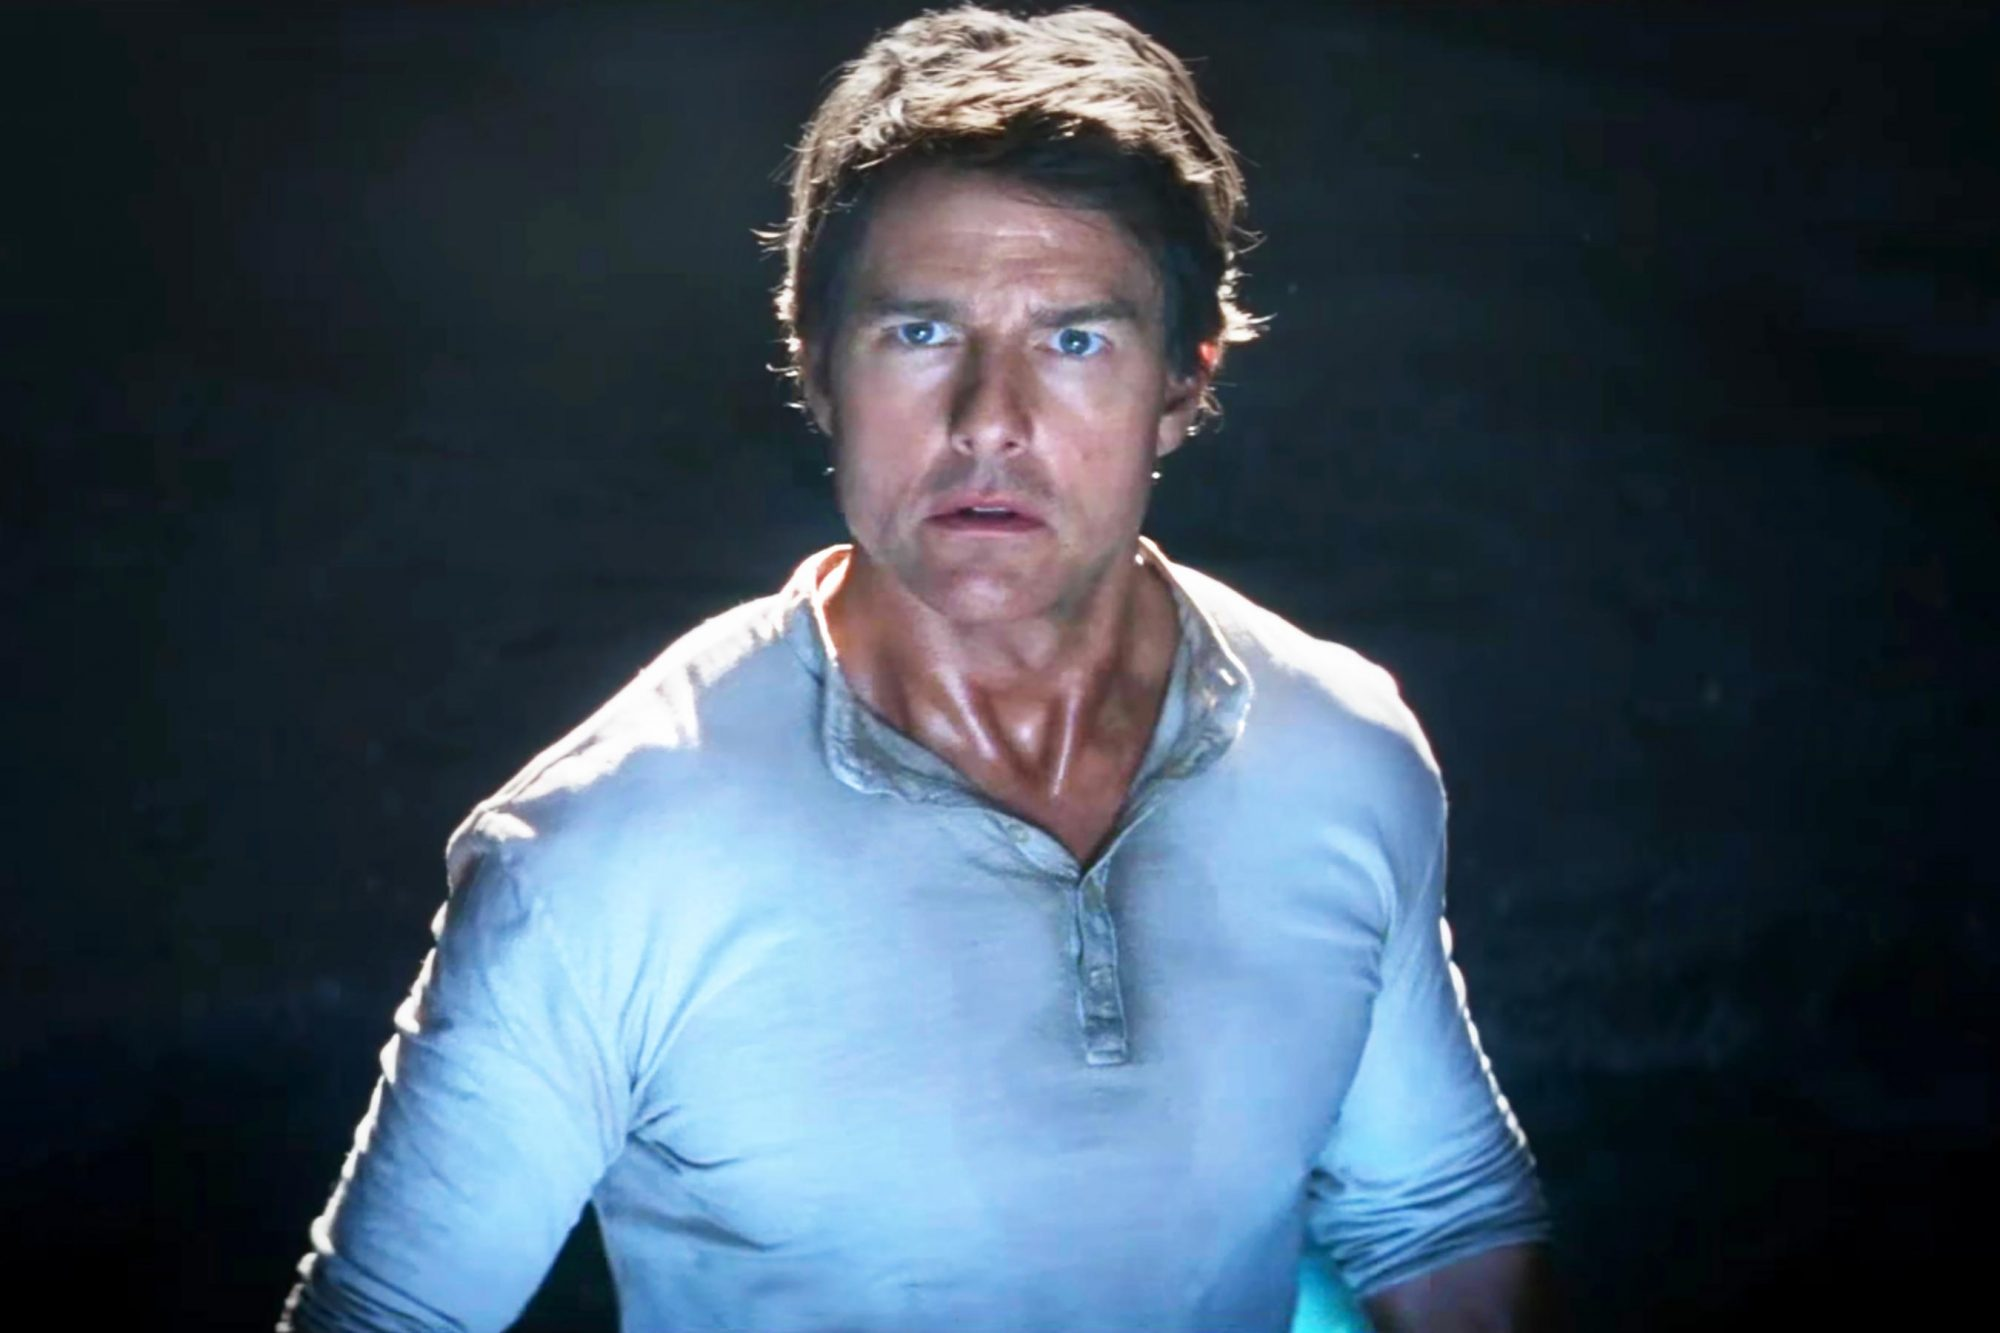 The Mummy - Official Trailer #2 [HD] (screen grab) CR: Universal Pictures